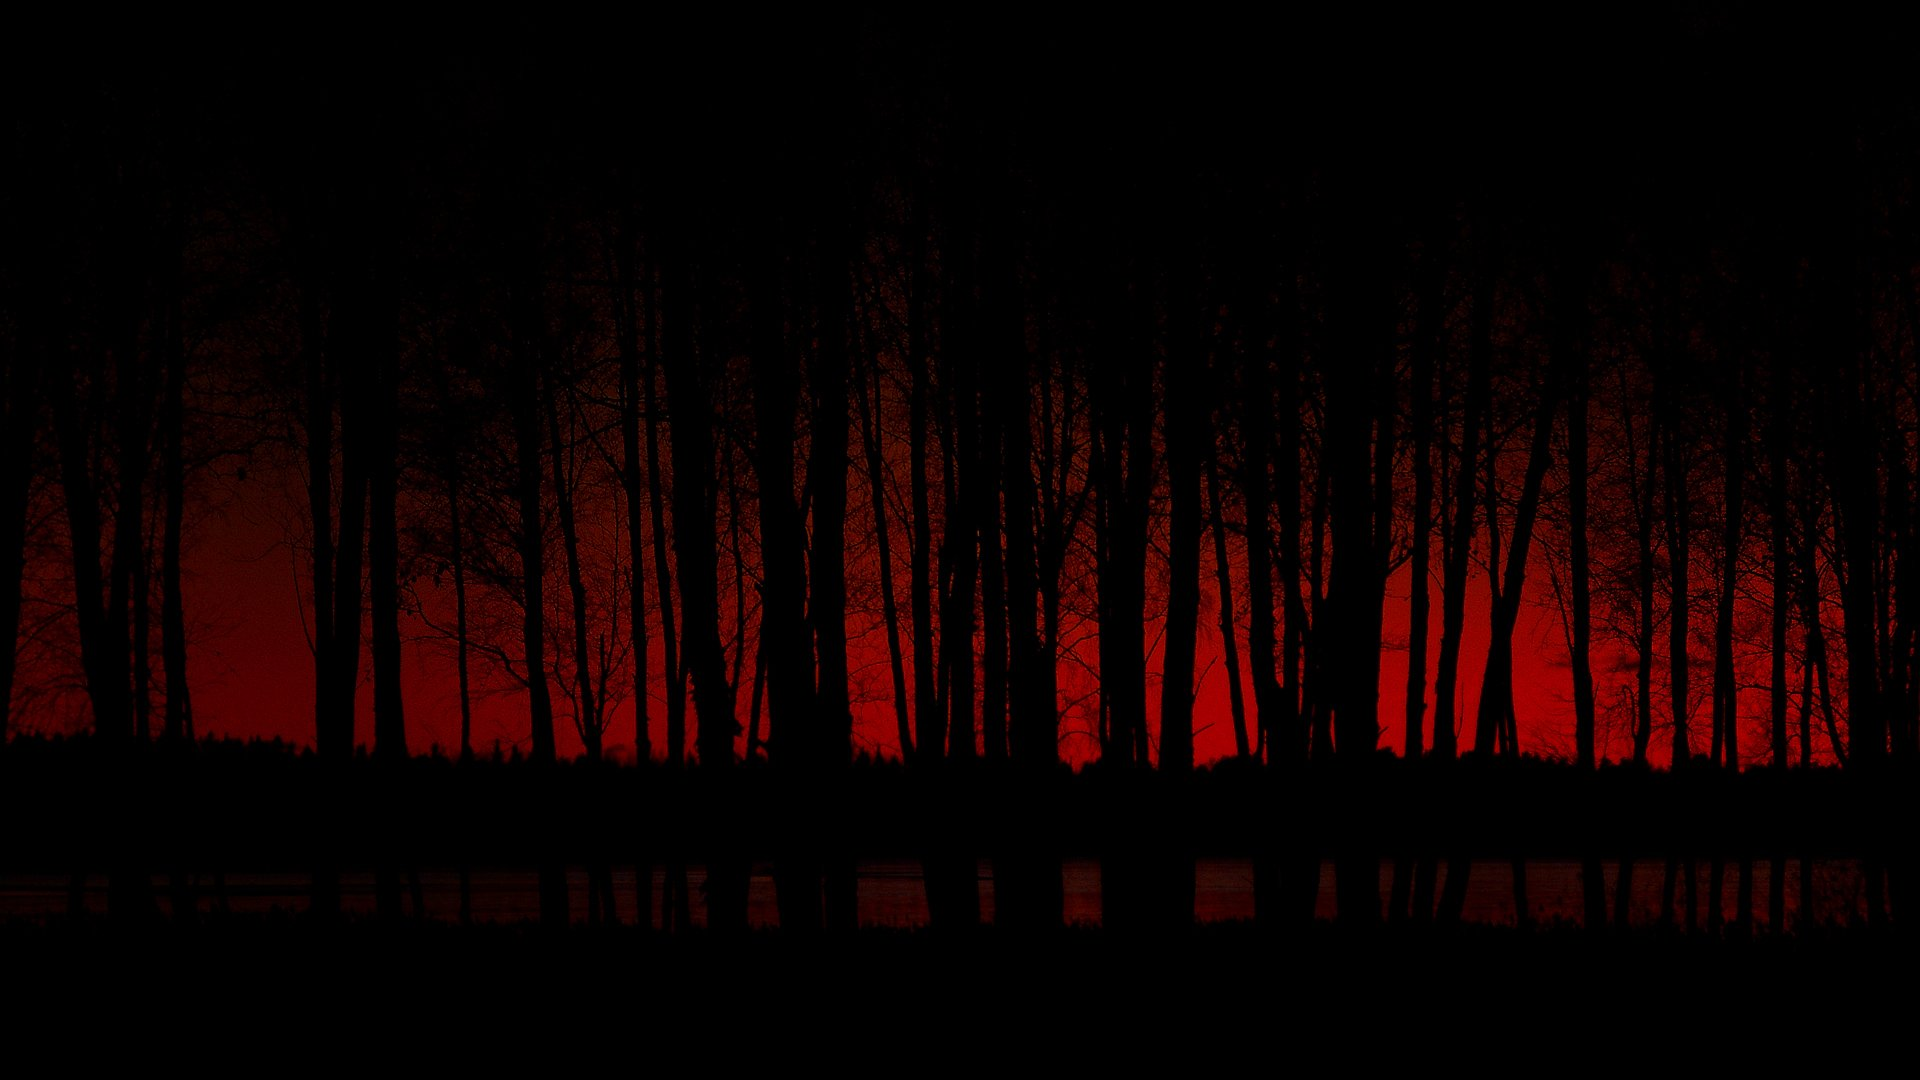 Dark - Forest  Wallpaper